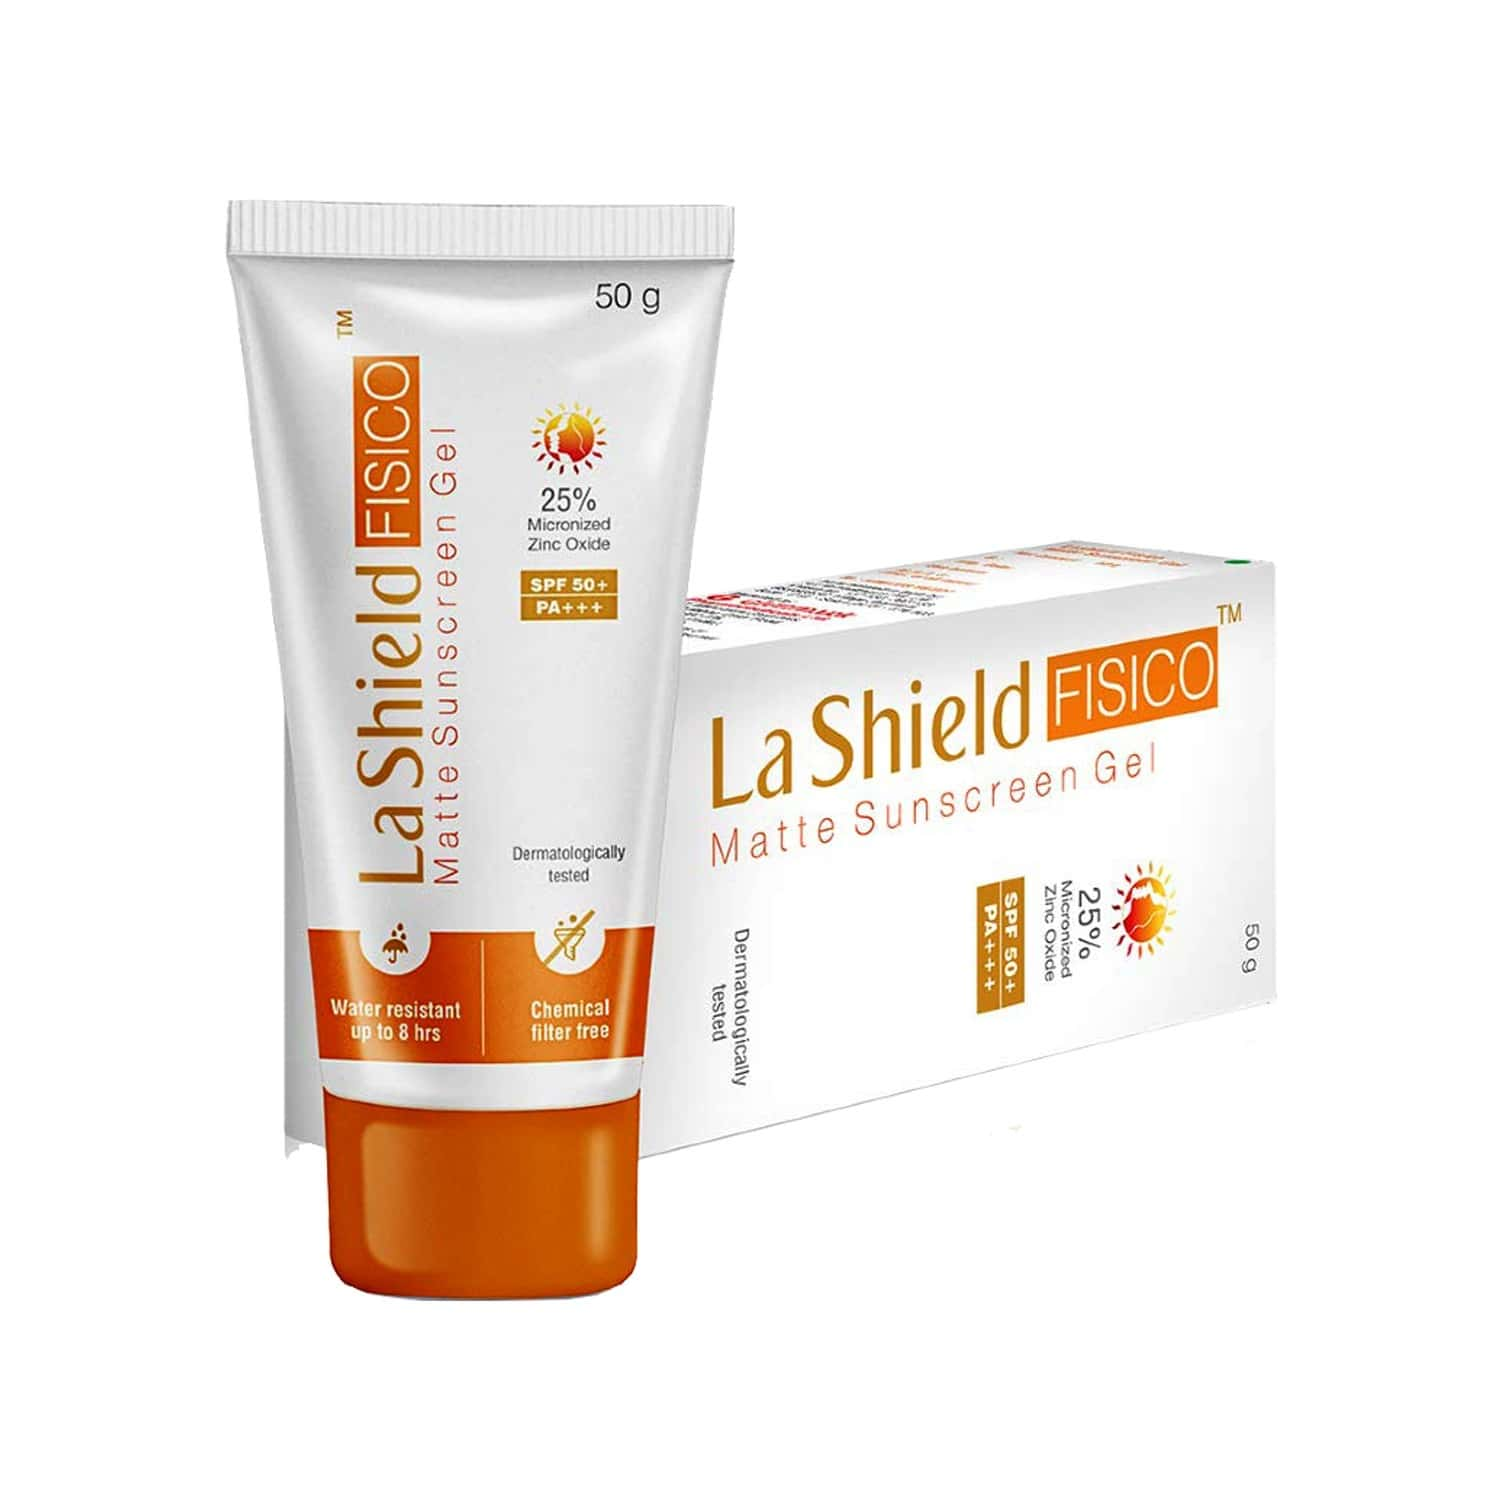 La Shield Fisico Sunscreen Spf 50 Matte Tube Of 50 G